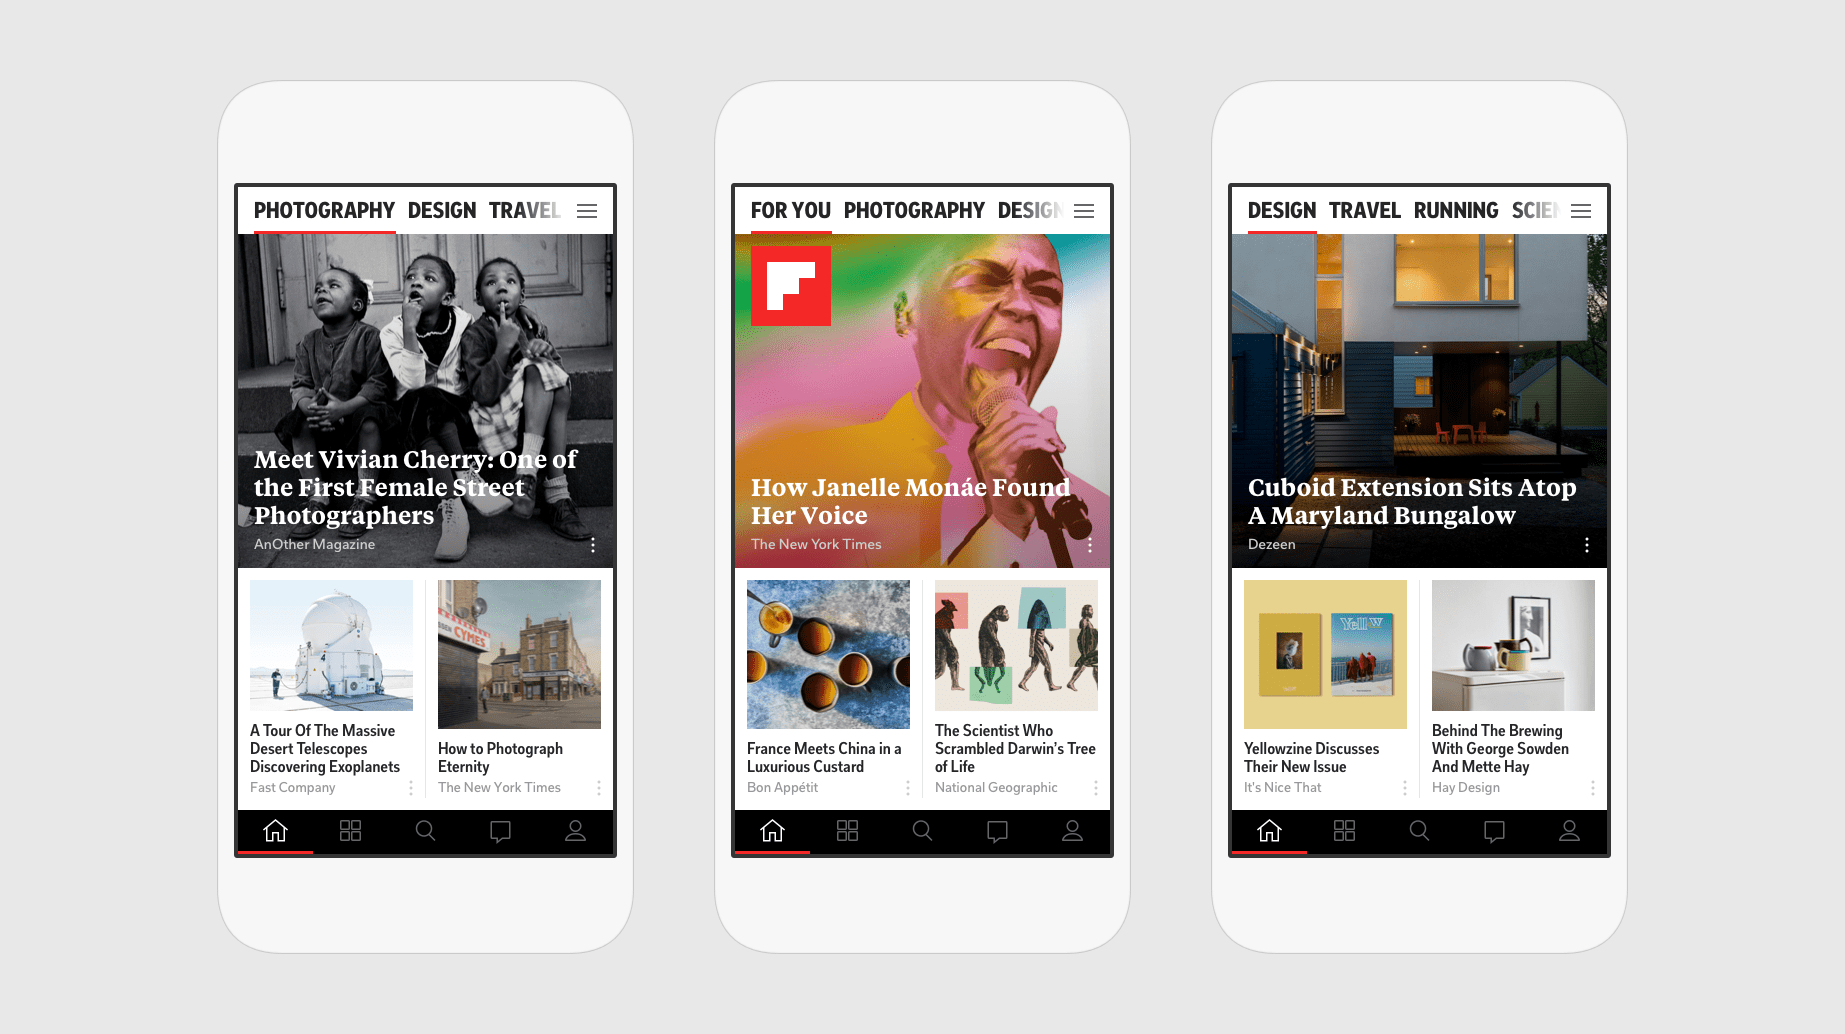 The new Flipboard home experience.